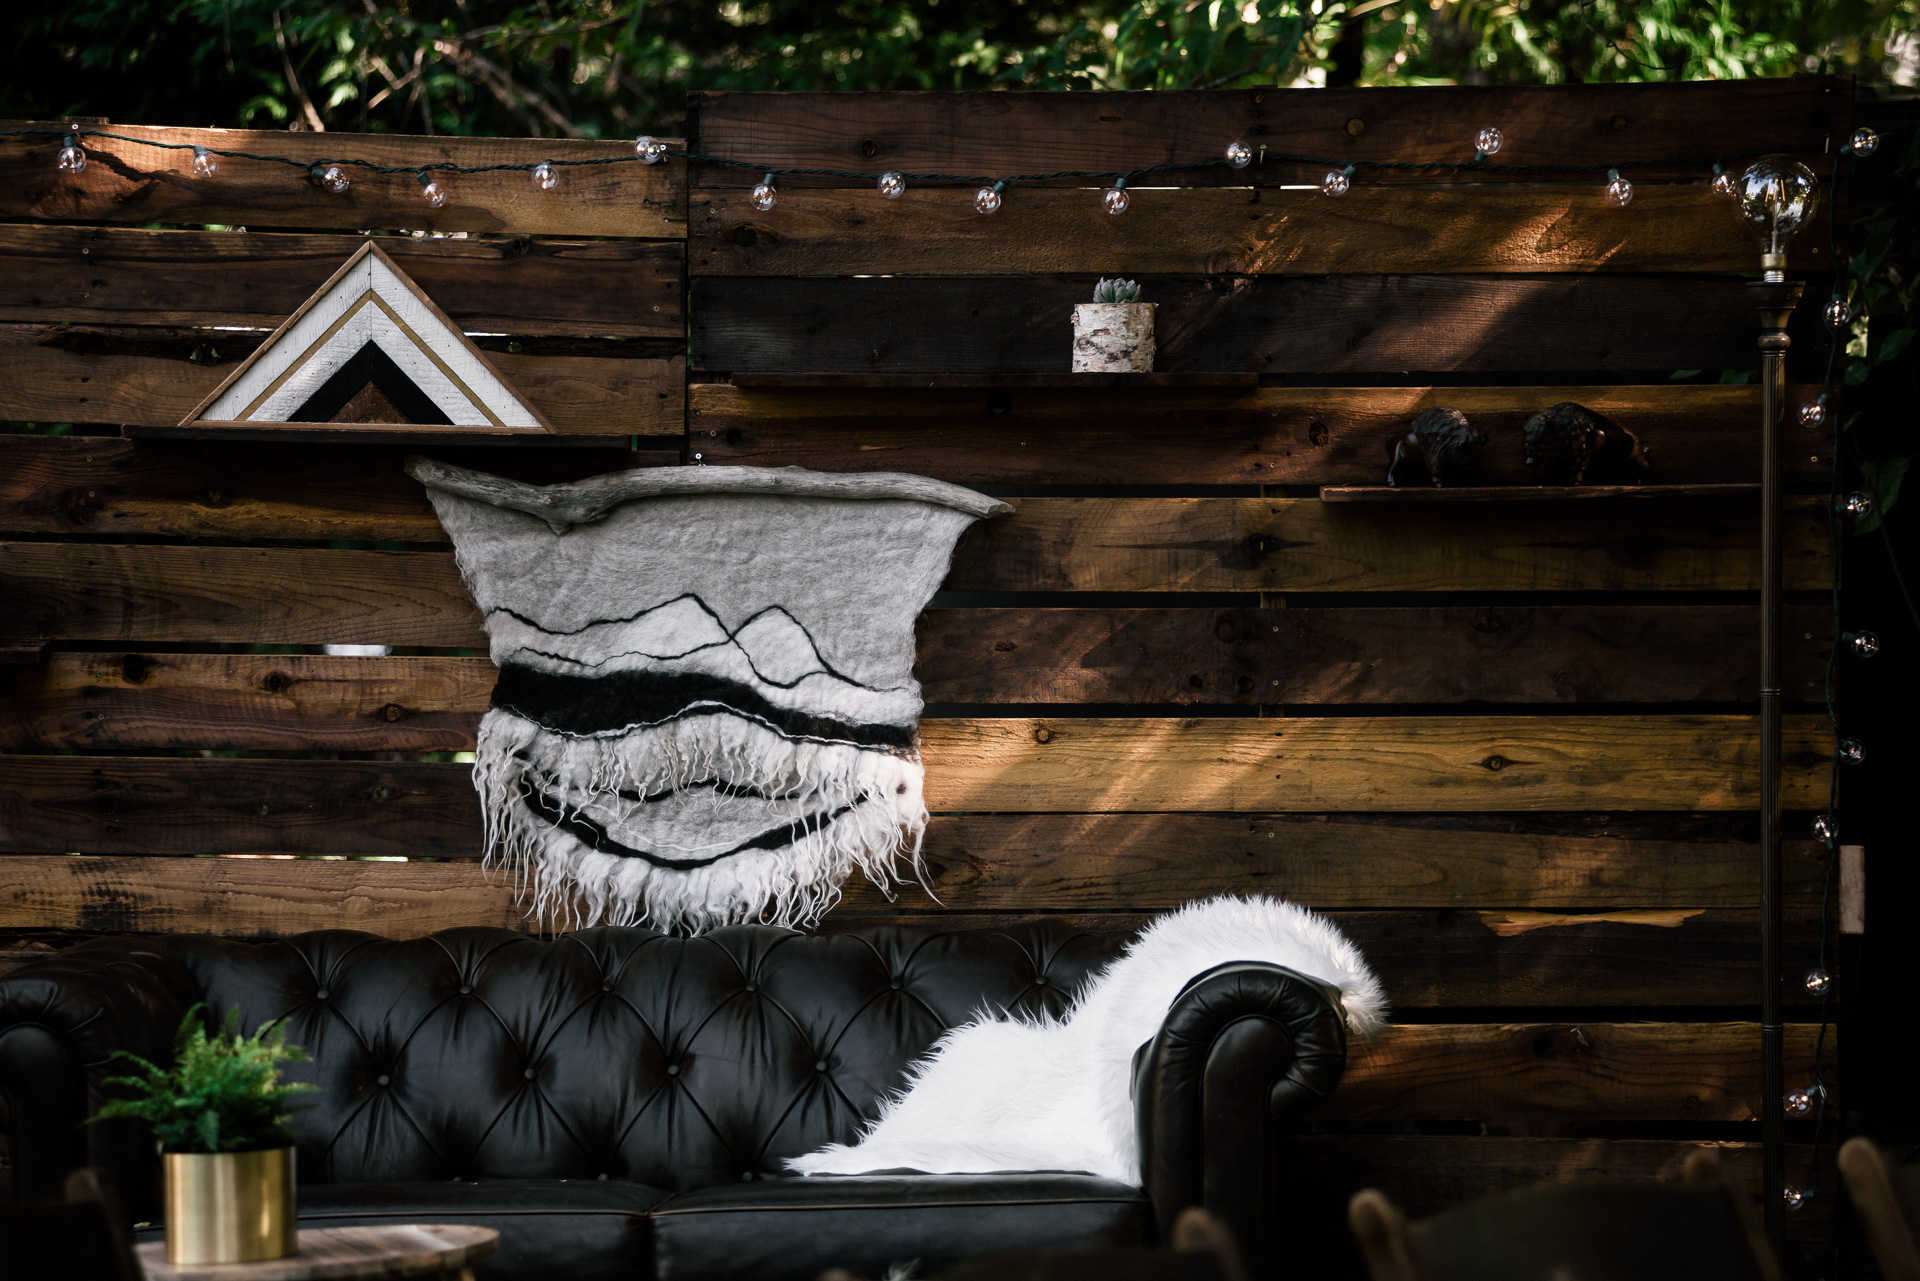 leather couch in front of stained wooden pallet wall with shelves and lights shot by wedding photographer at the charming St. George Hotel in Volcano California